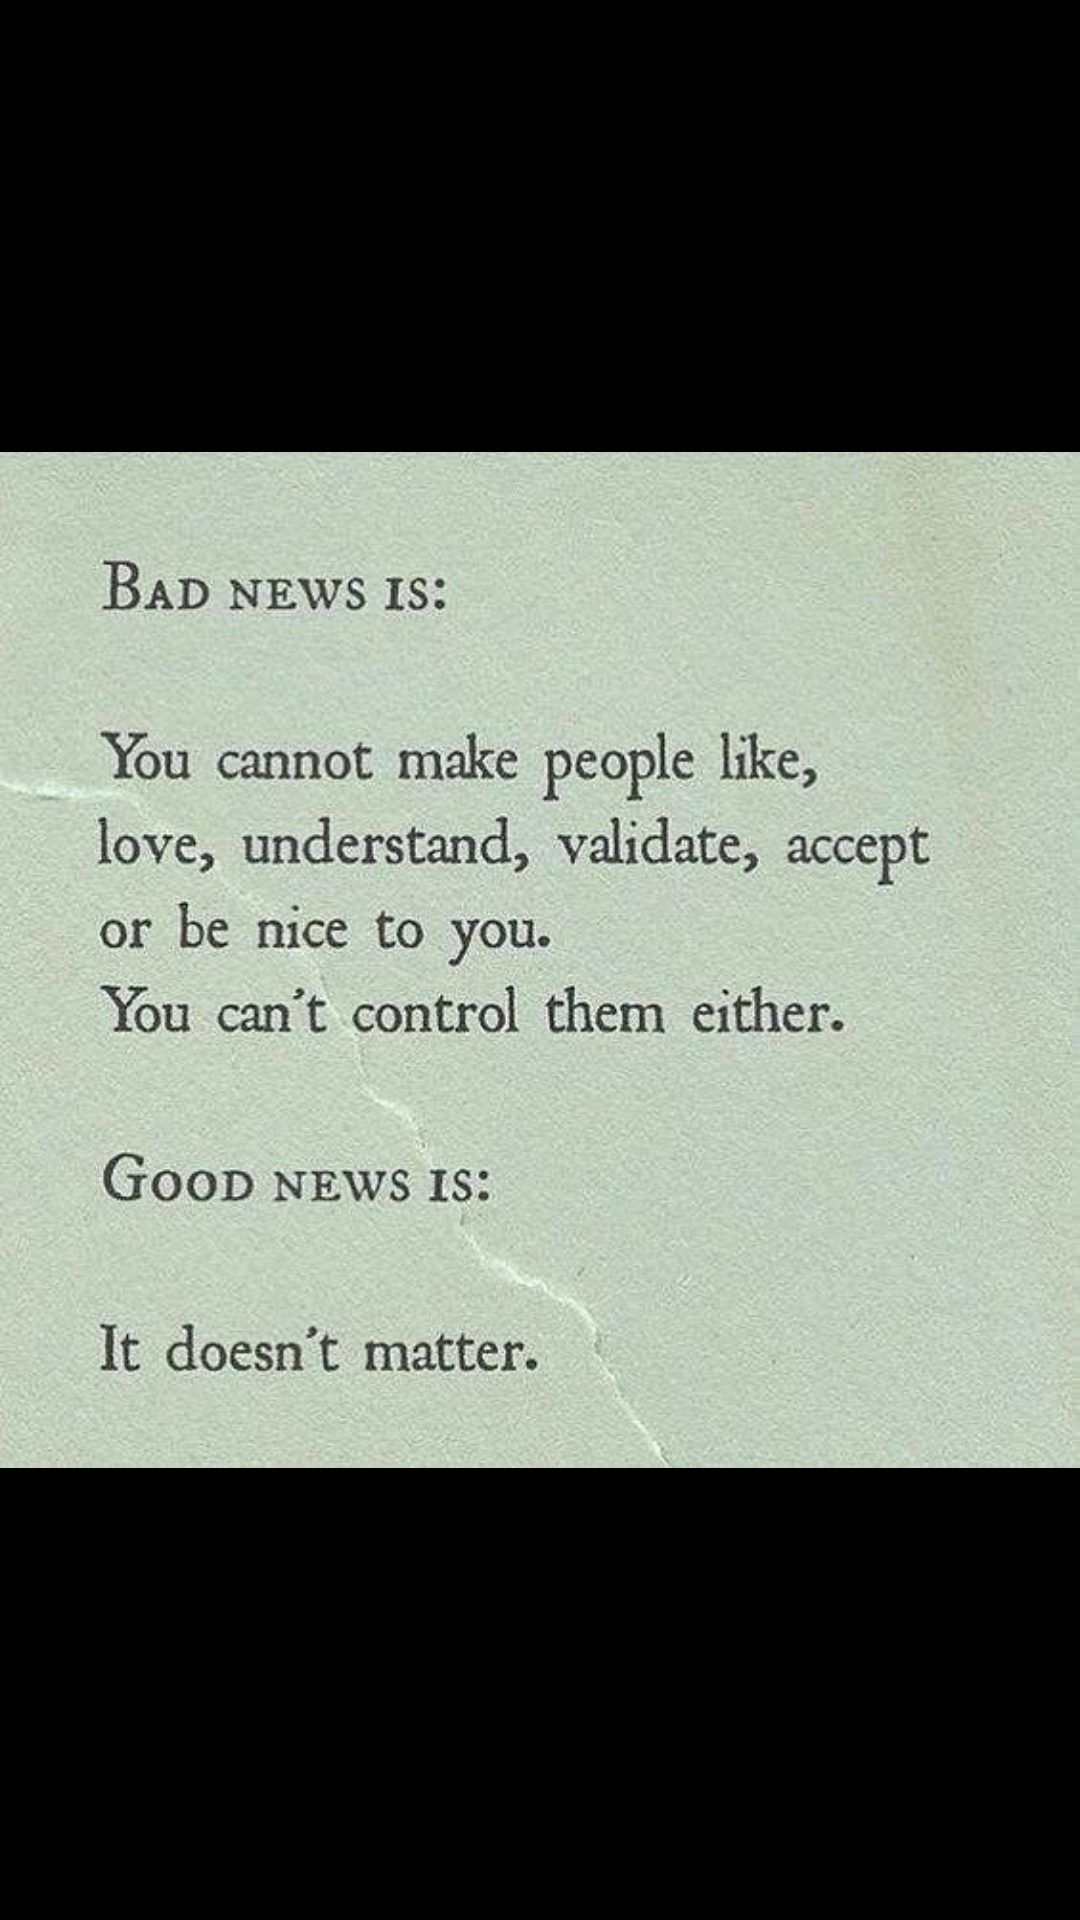 BAD NEWS 18: You cannot make People like, love, understand, validate, accept or be nice to you. You can't control them either. GOOD NEWS 13: It doesn't matter. https://inspirational.ly